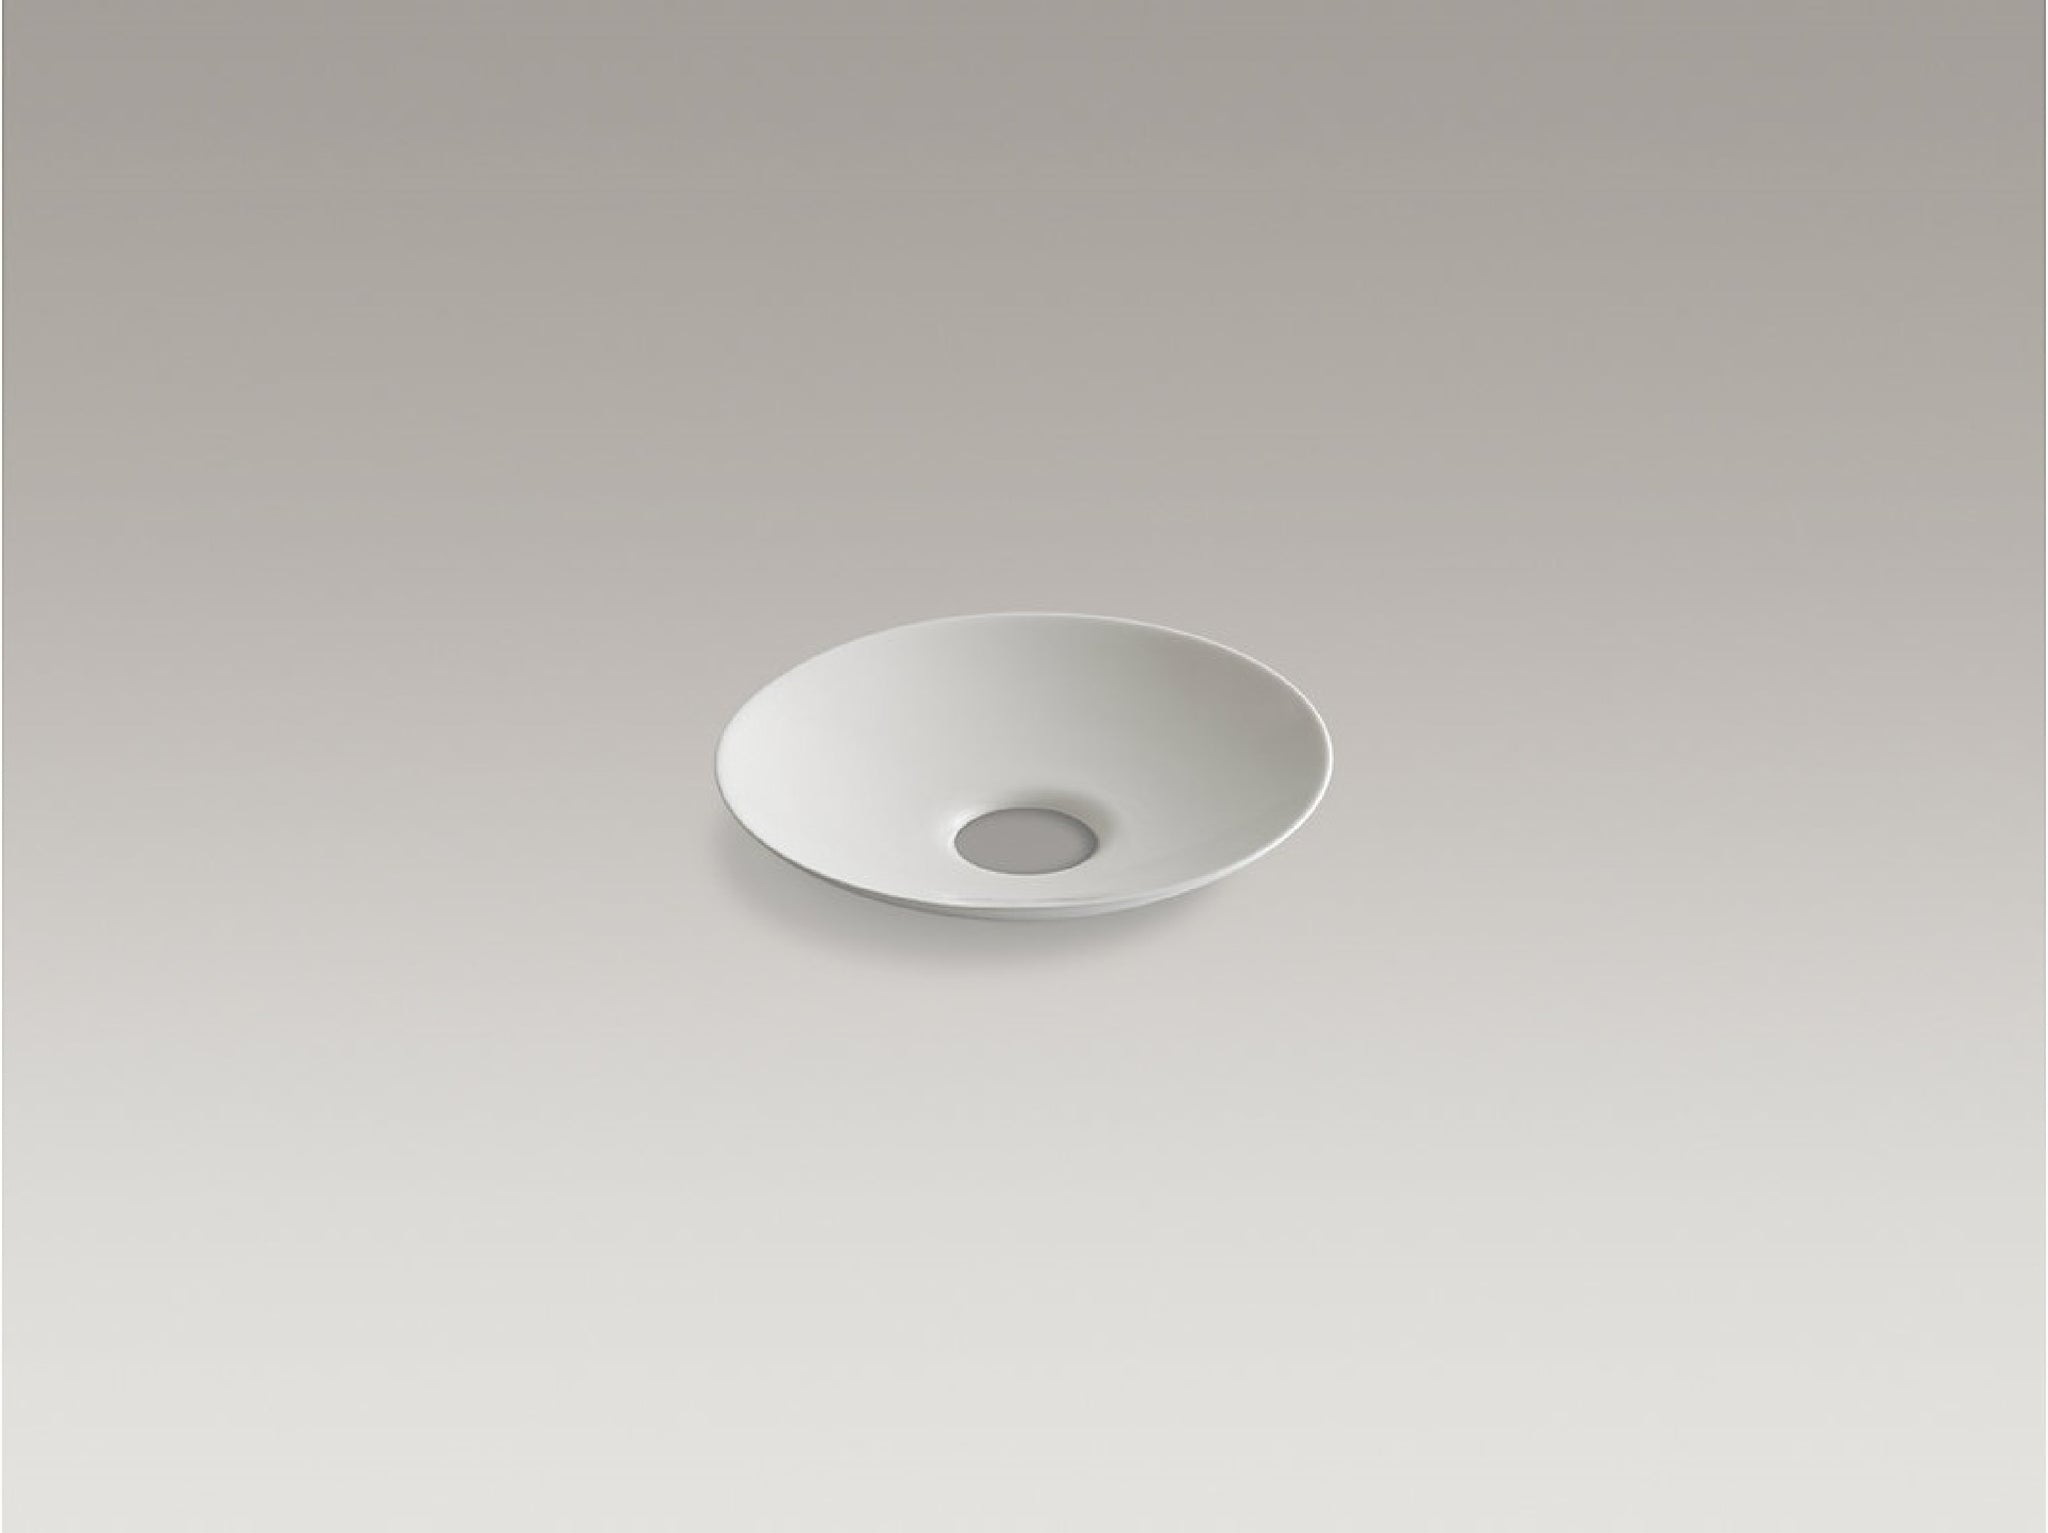 Kohler Sink Purist Open-bottom Hand In White porcelain